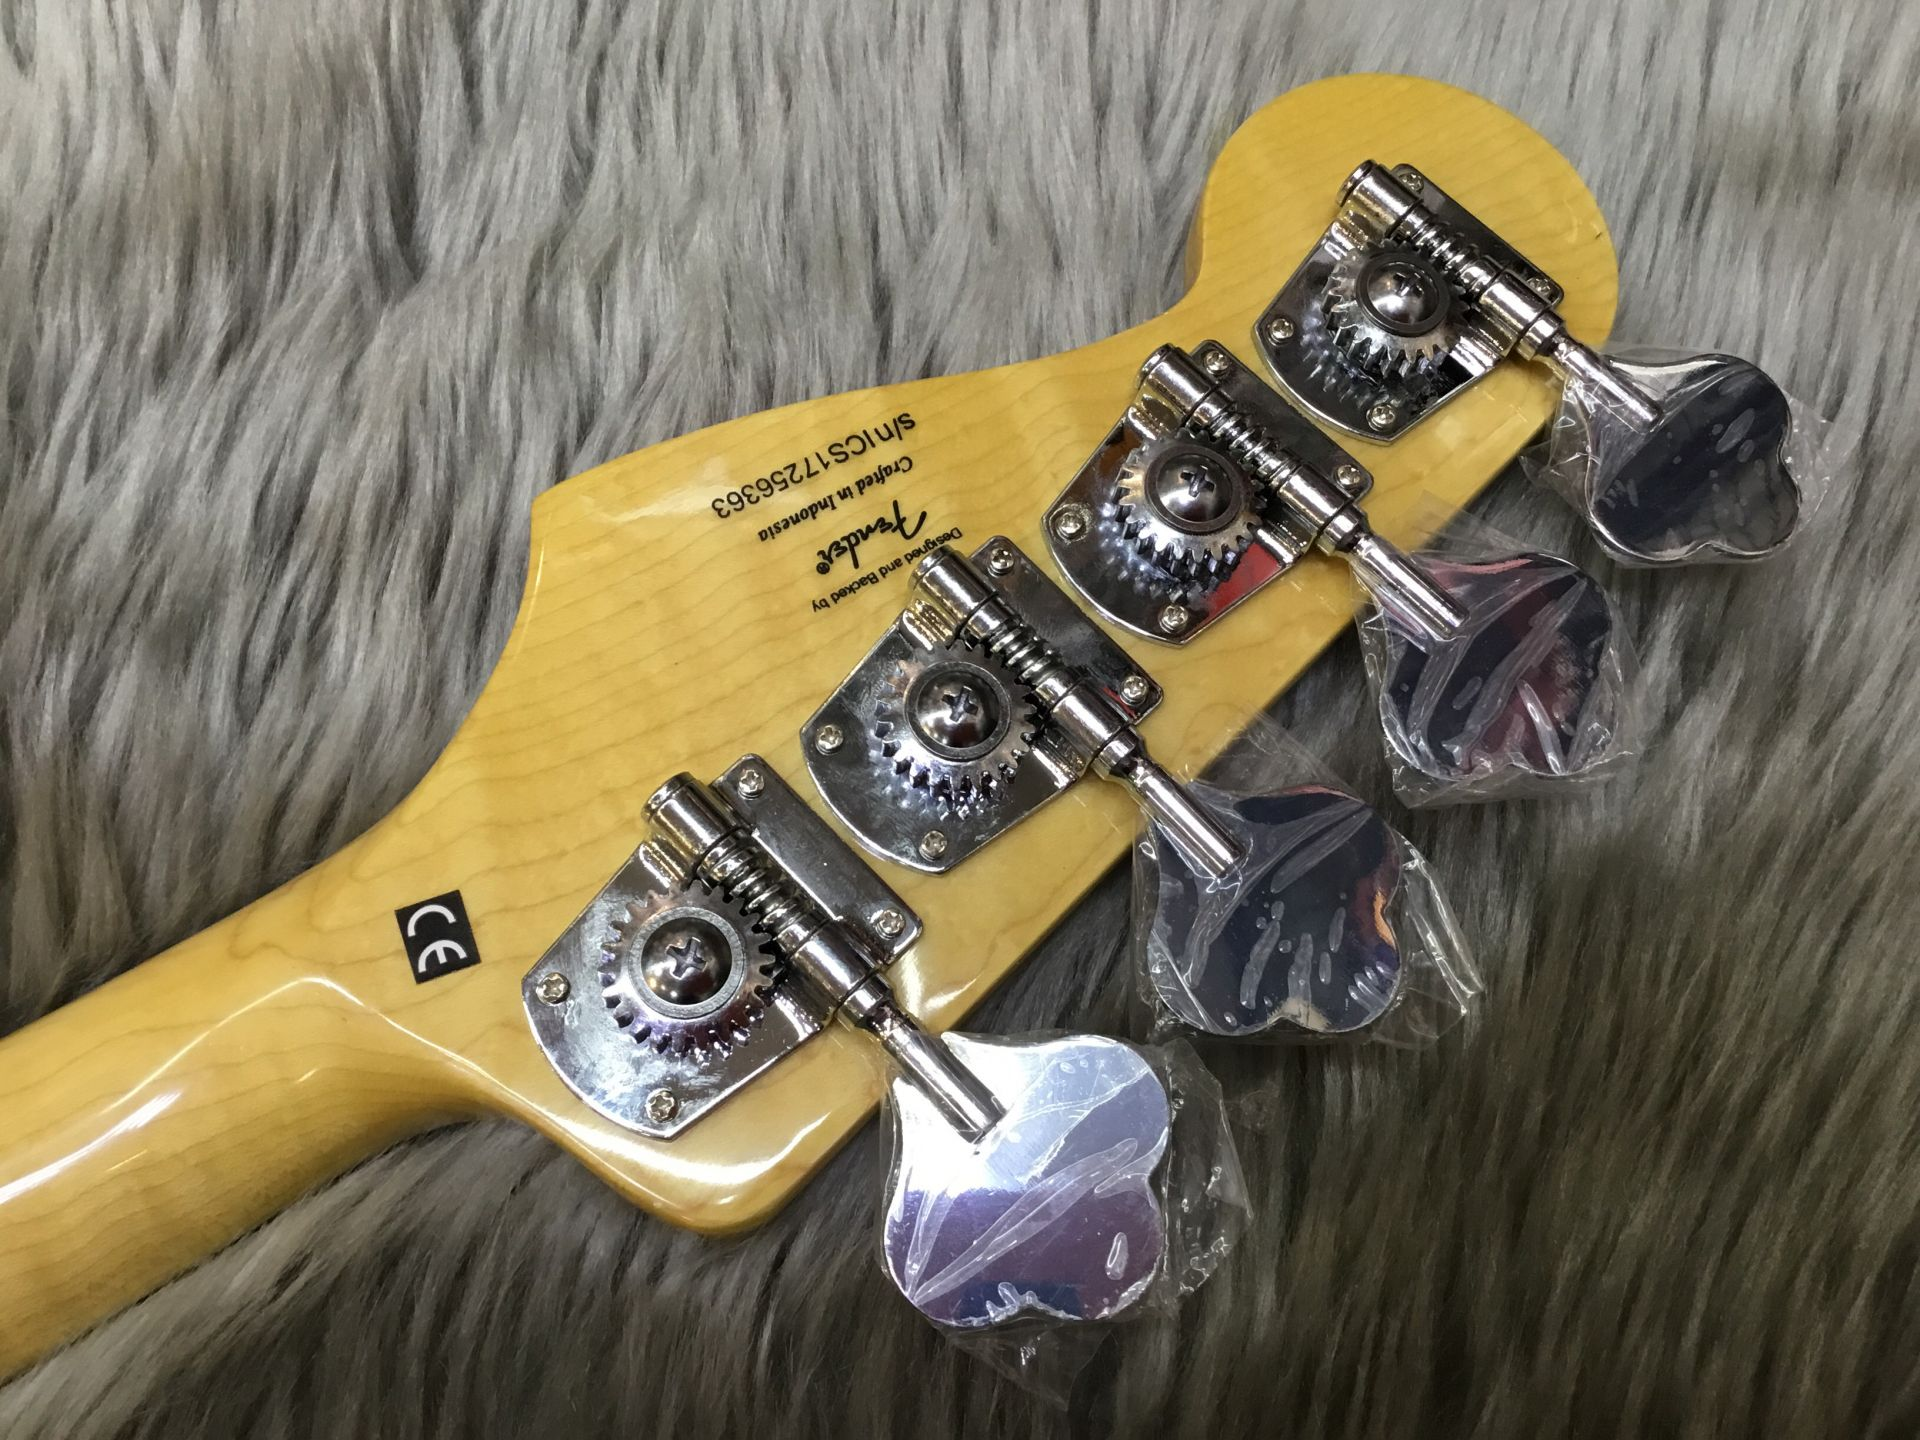 VINTAGE MODIFIED JAZZ BASS '70Sのヘッド裏-アップ画像